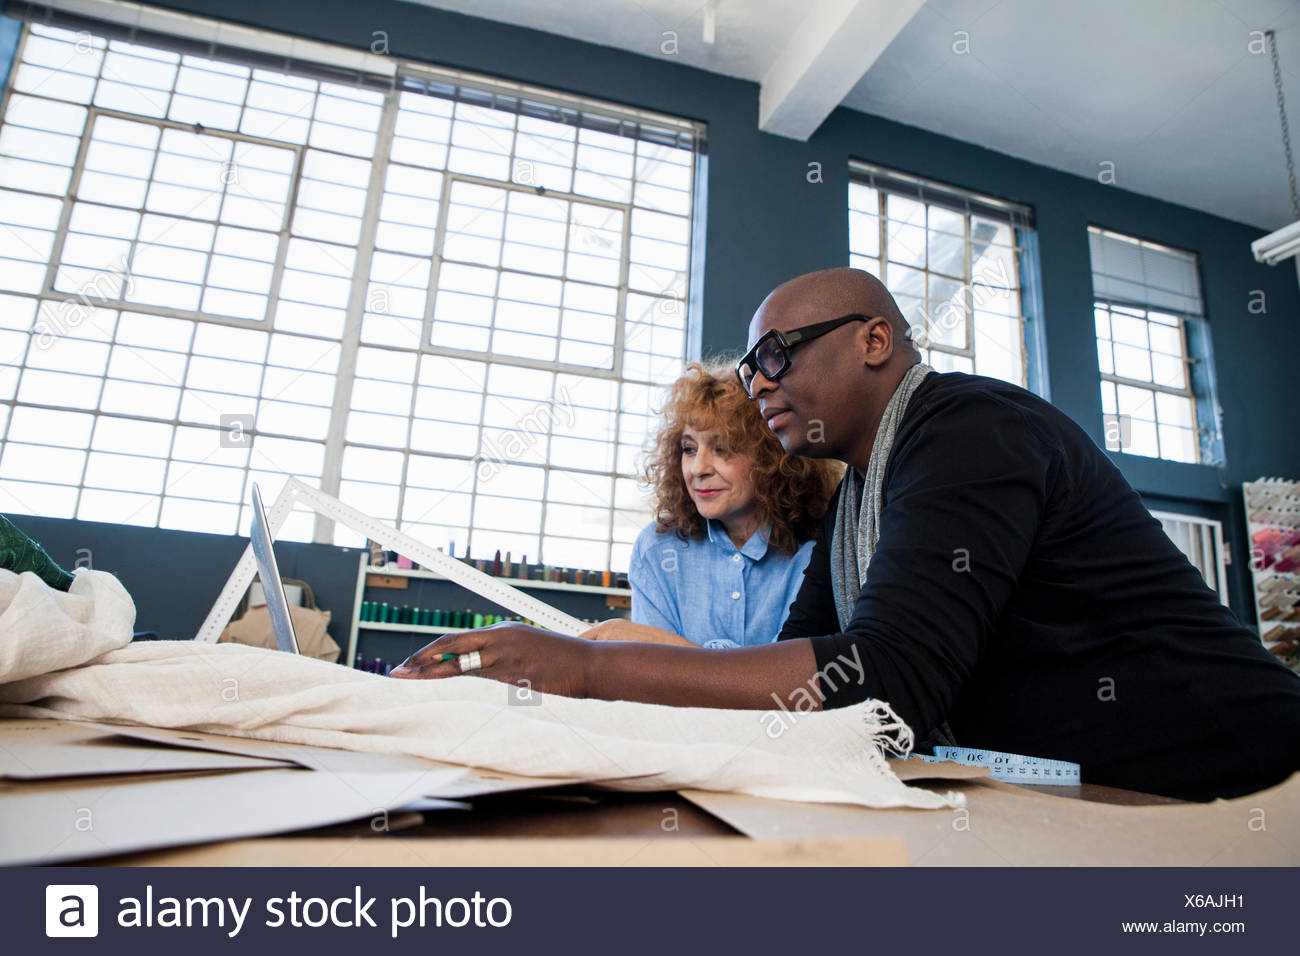 Female and male fashion design team looking at dressmaker's pattern in design studio - Stock Image